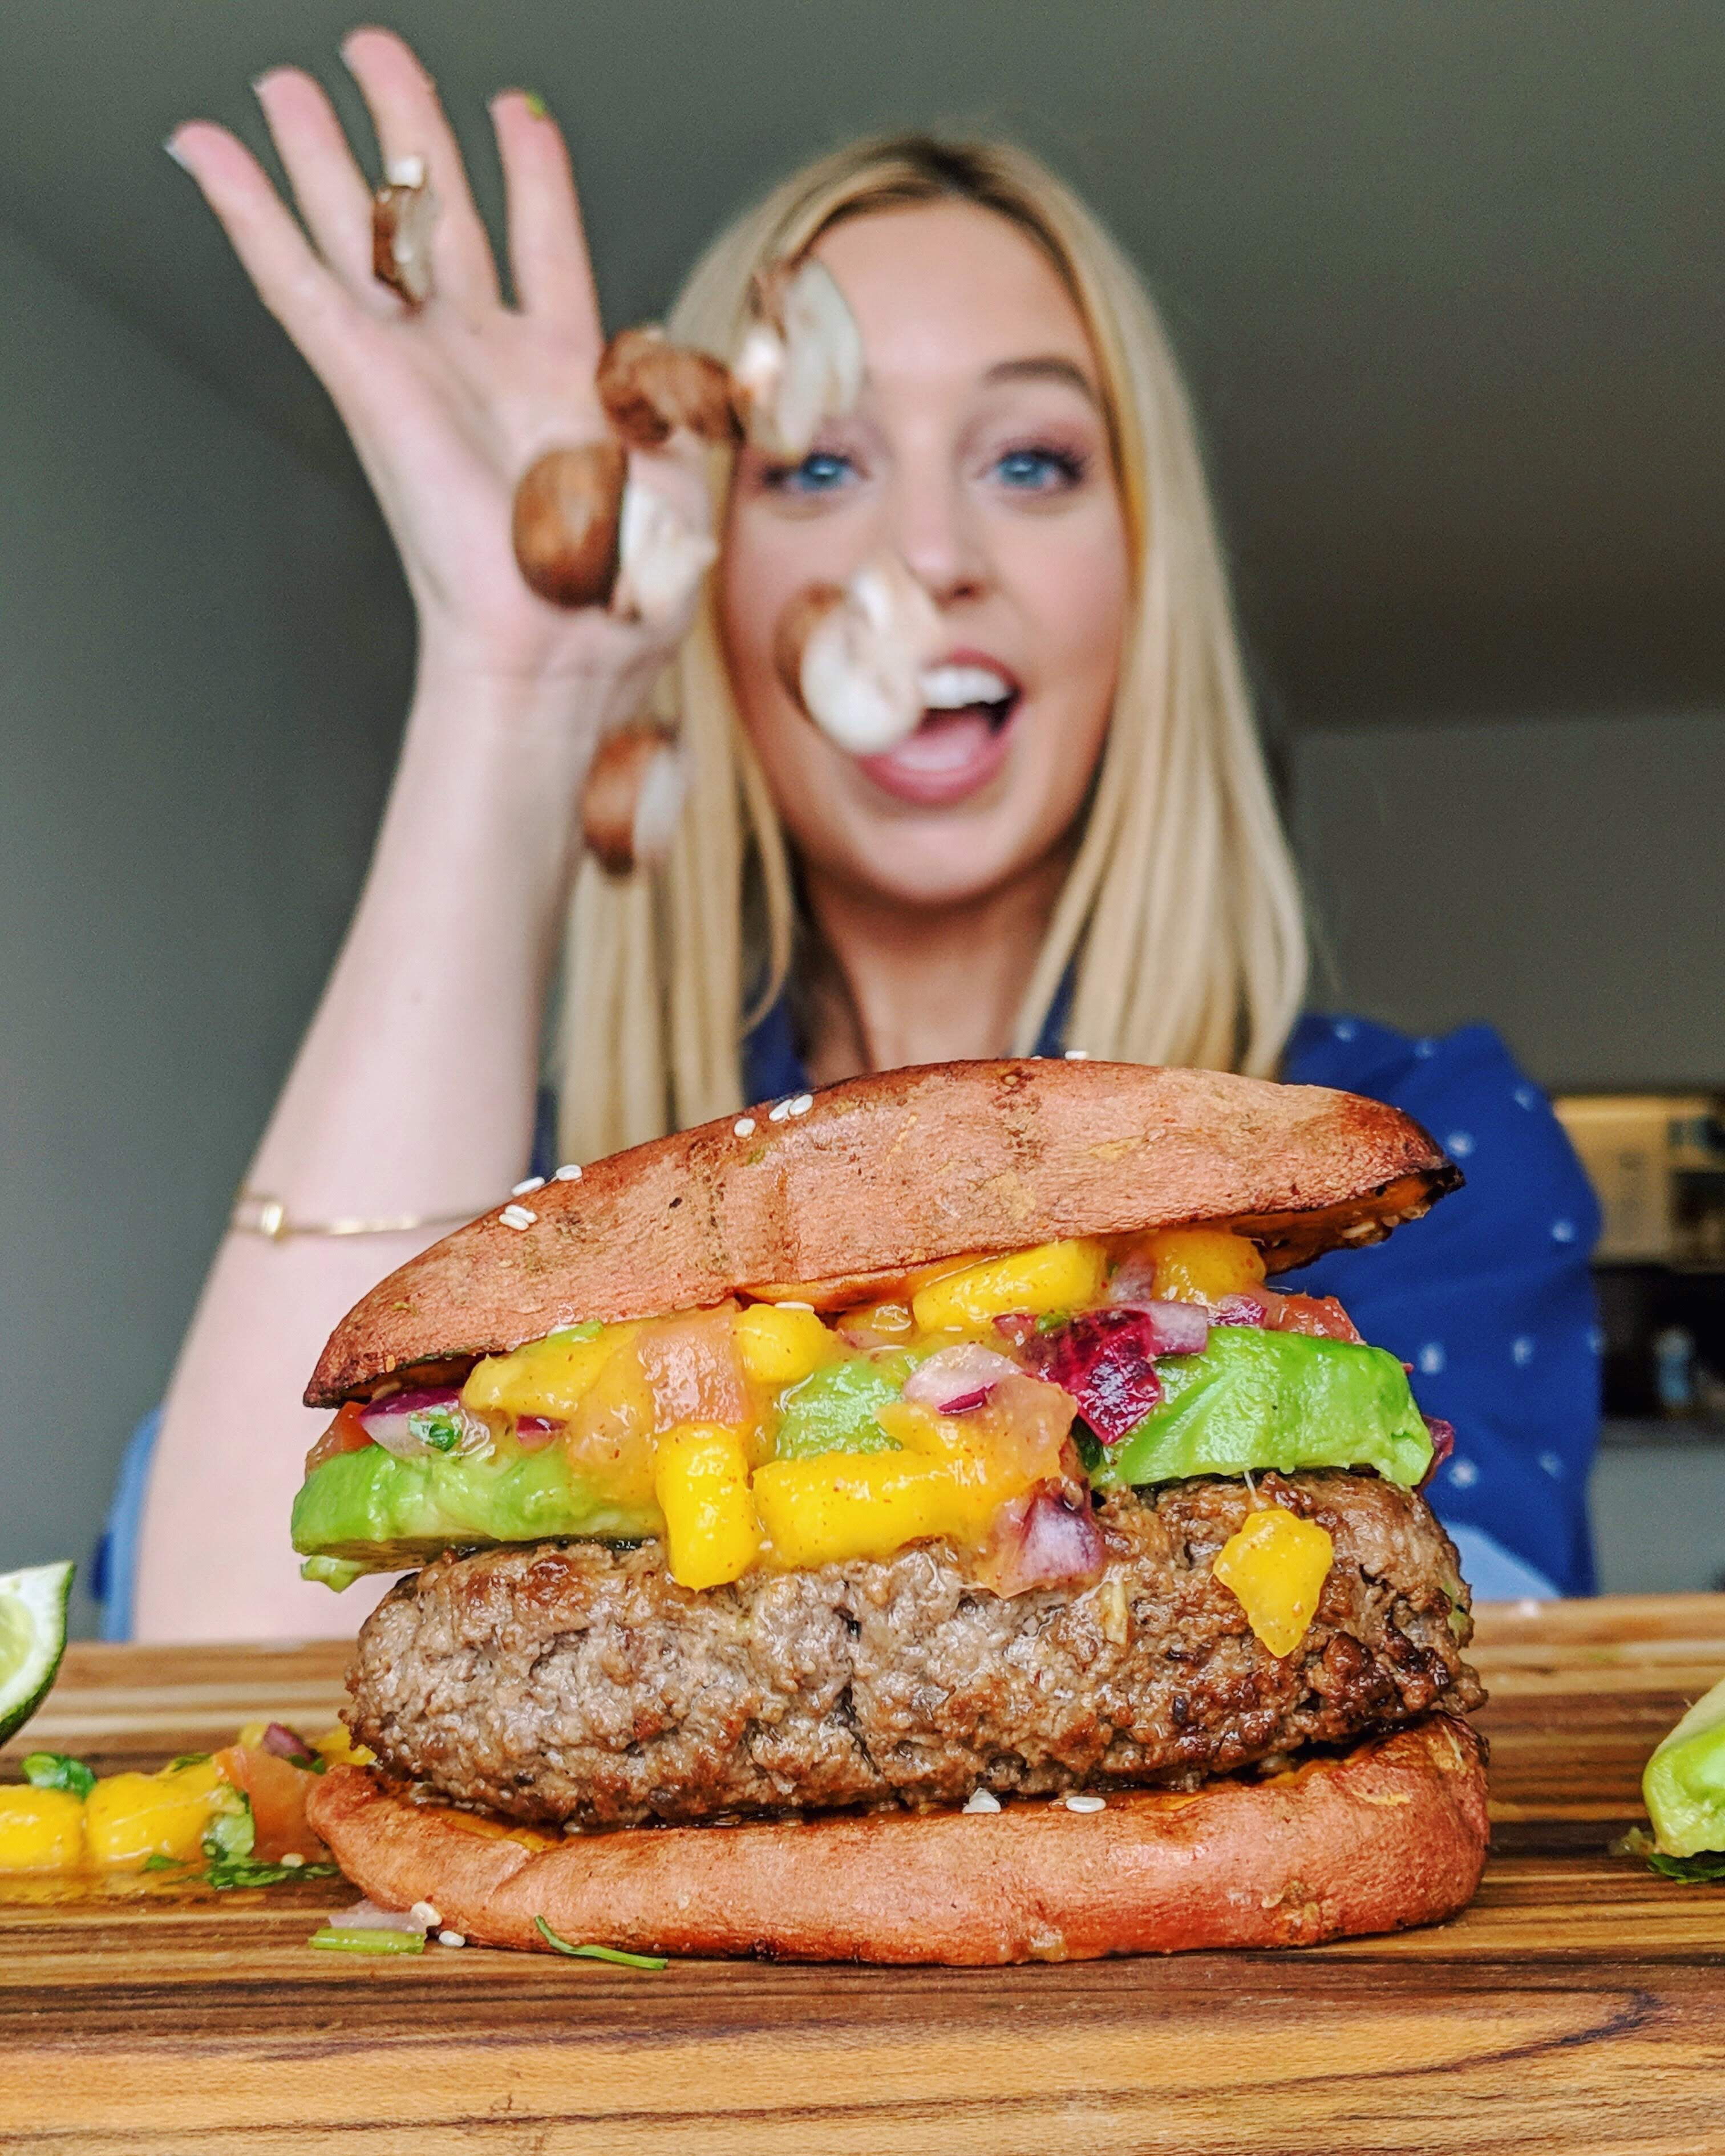 Blonde girl throwing mushrooms onto a caribbean burger with mango salsa and avocado